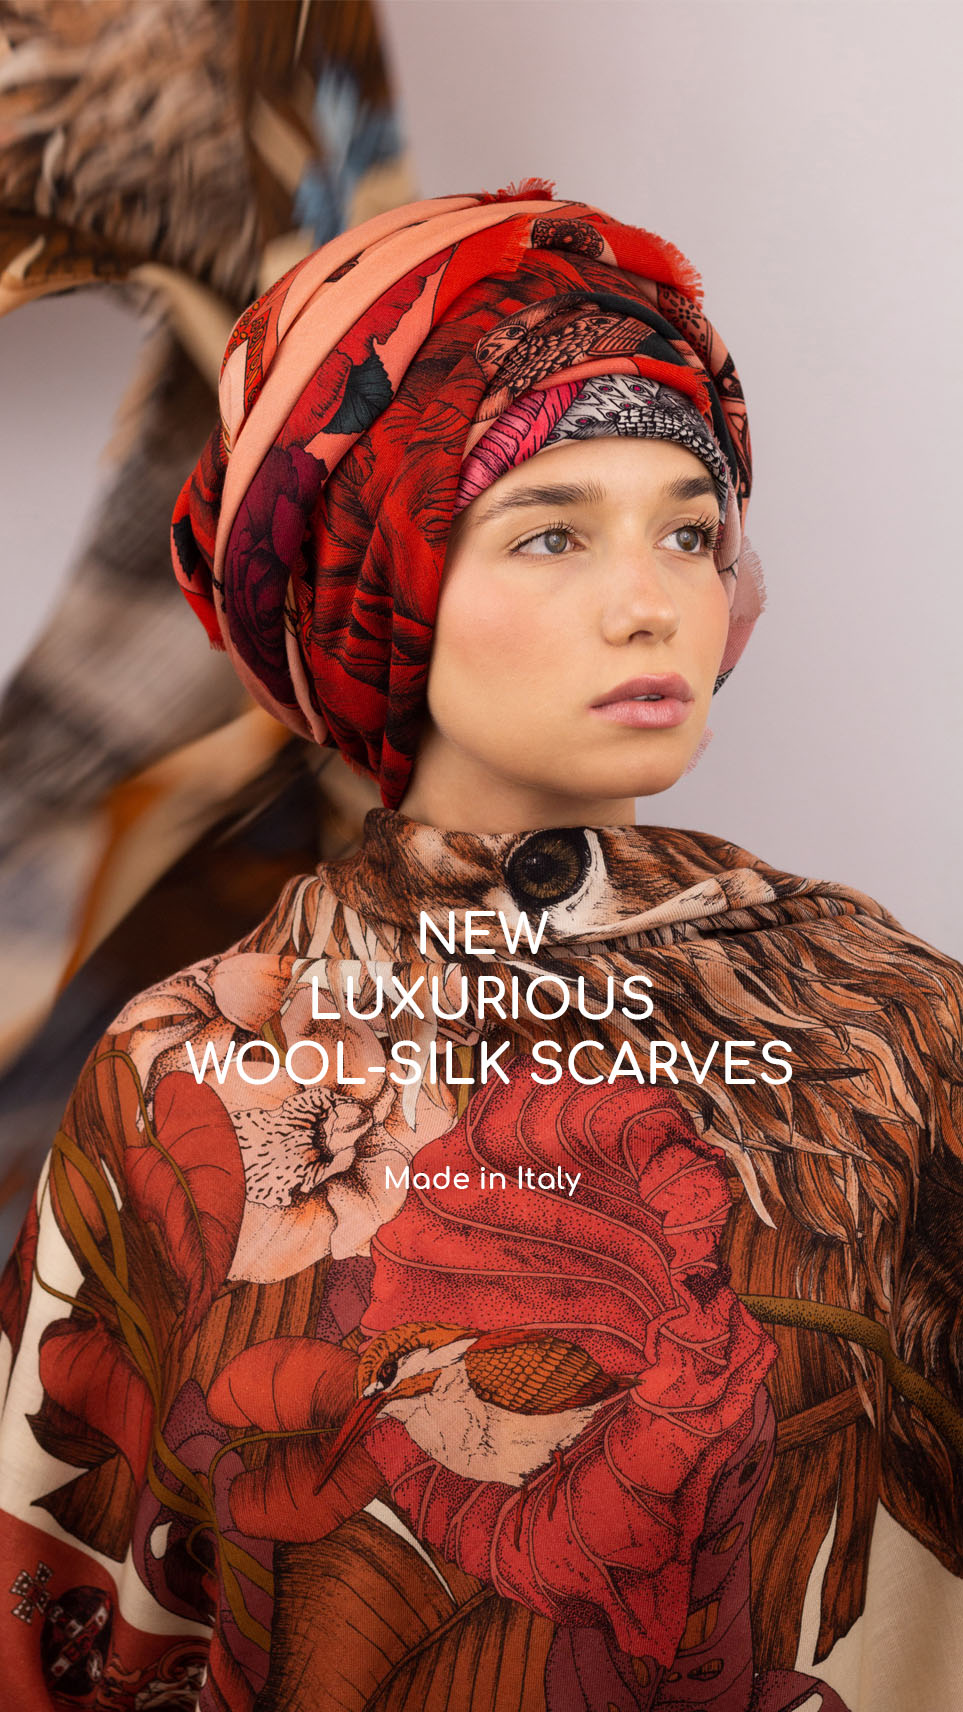 Wool Silk Scarf Collection